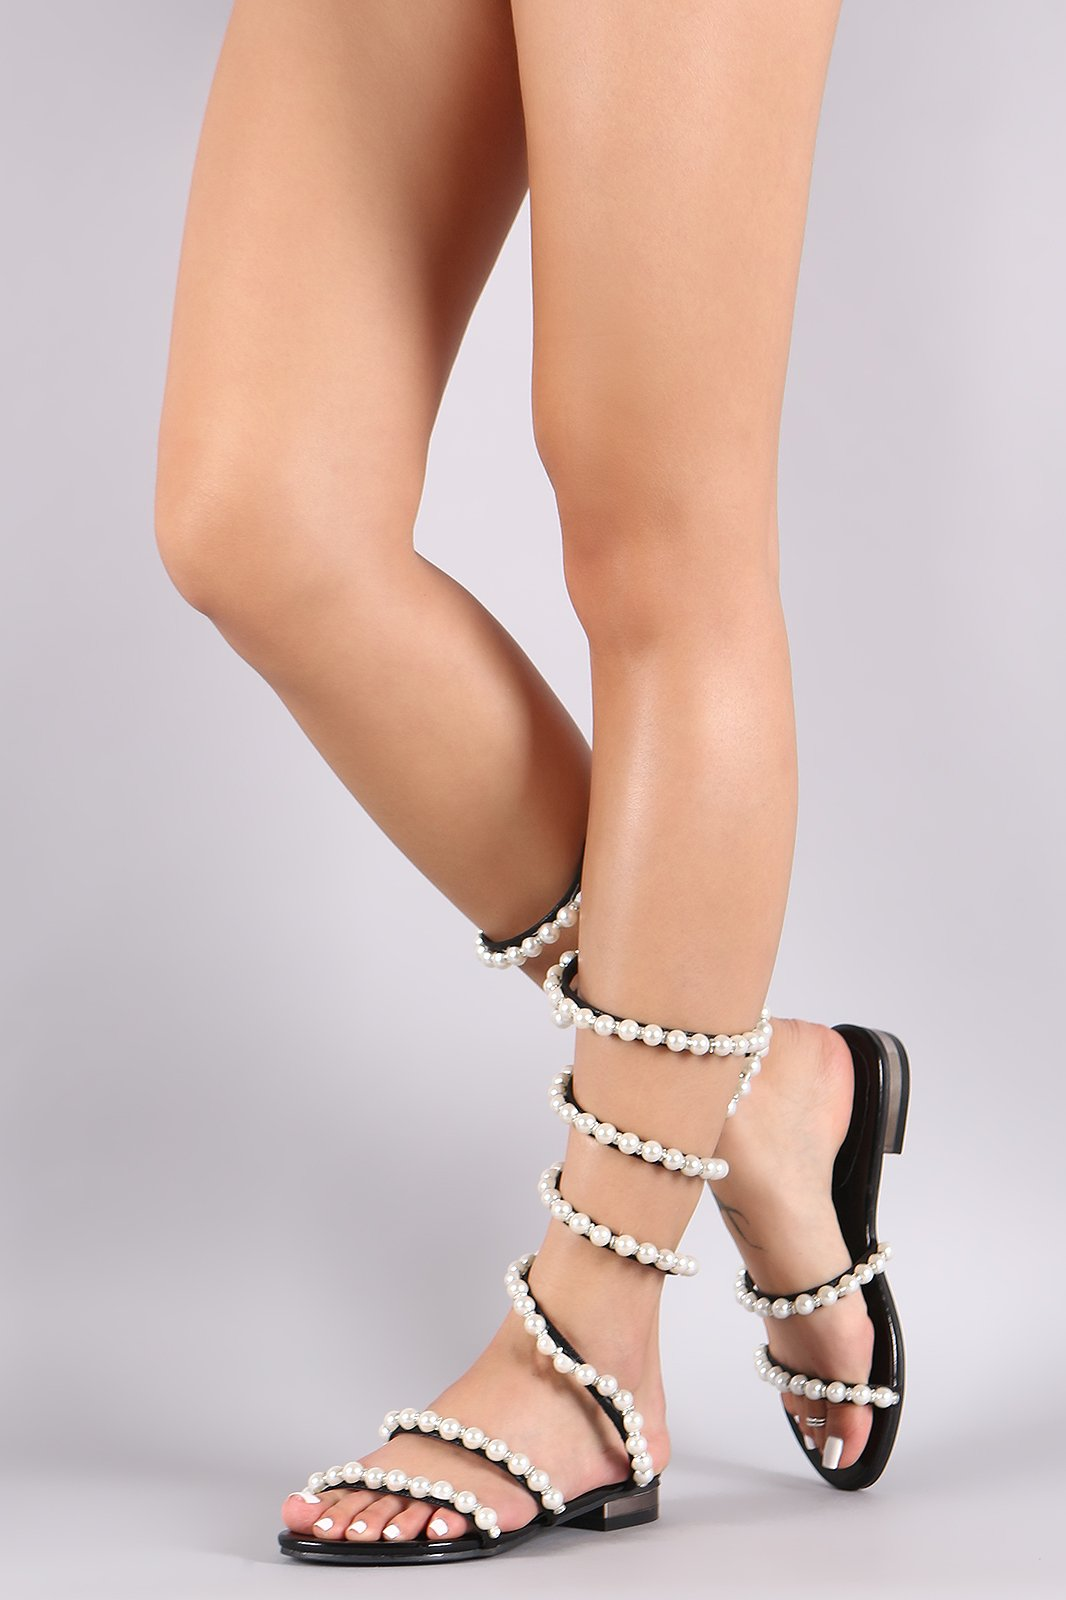 8ac95a72e950 This fabulous flat sandal features an open toe silhouette